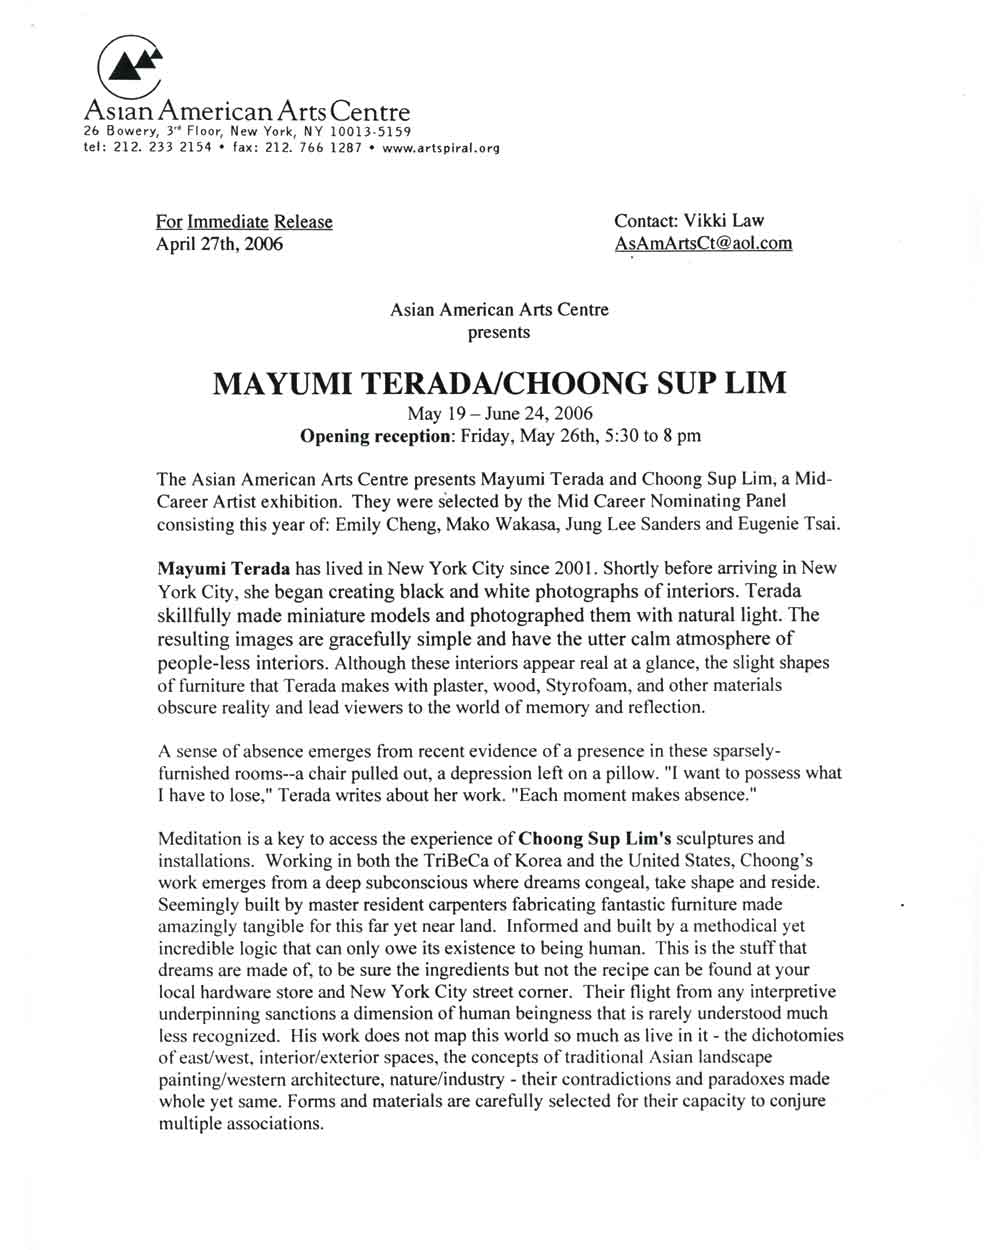 Mayumi Terada/Choong Sup Lim, press release, pg 1